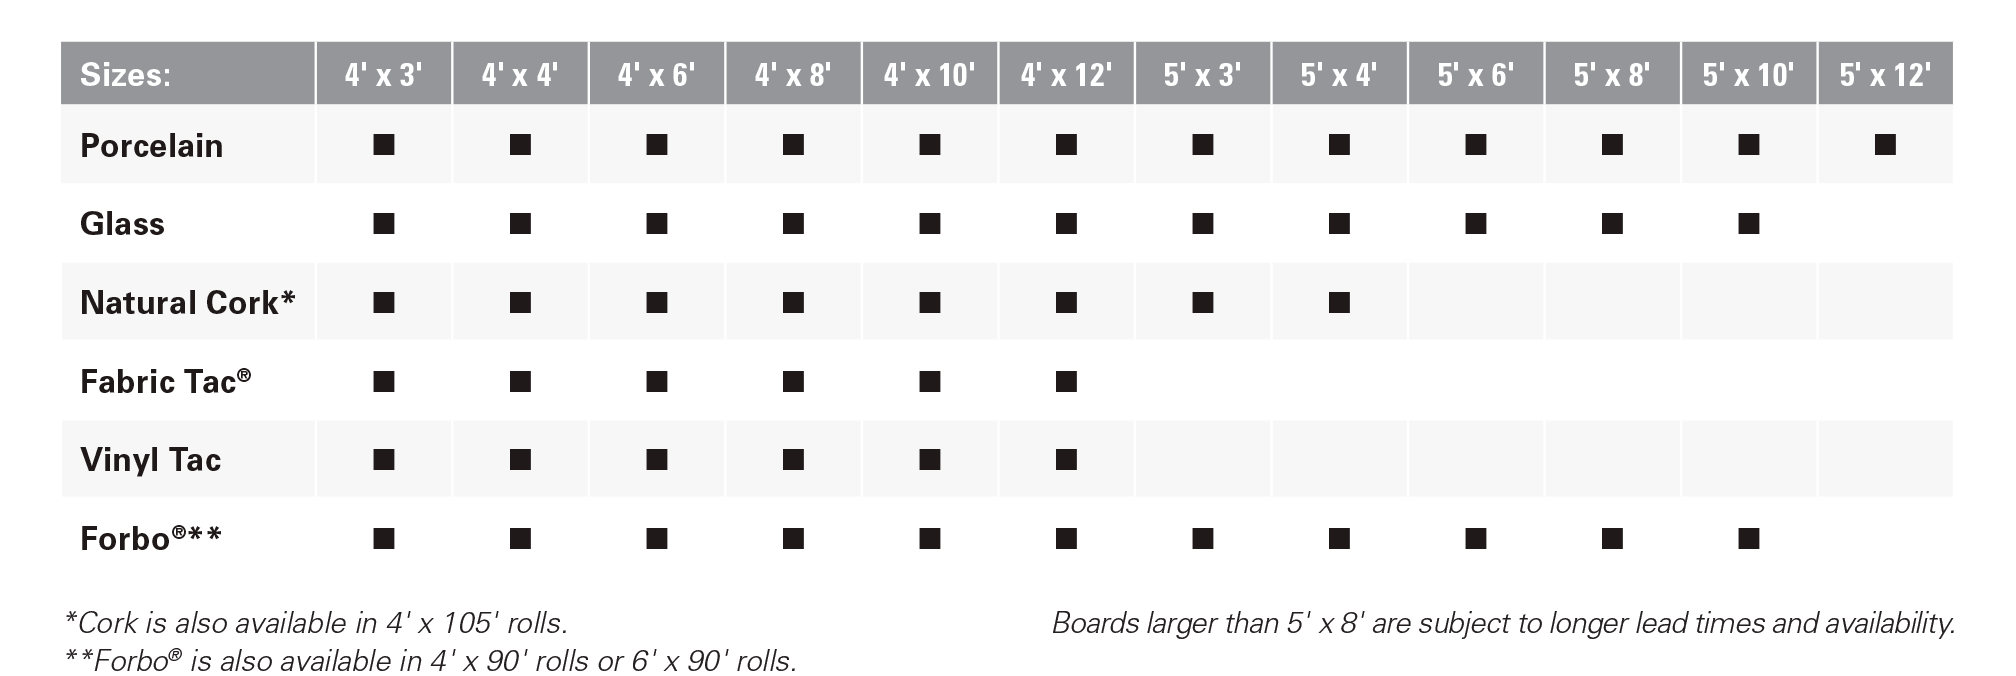 Standard Size Options Table